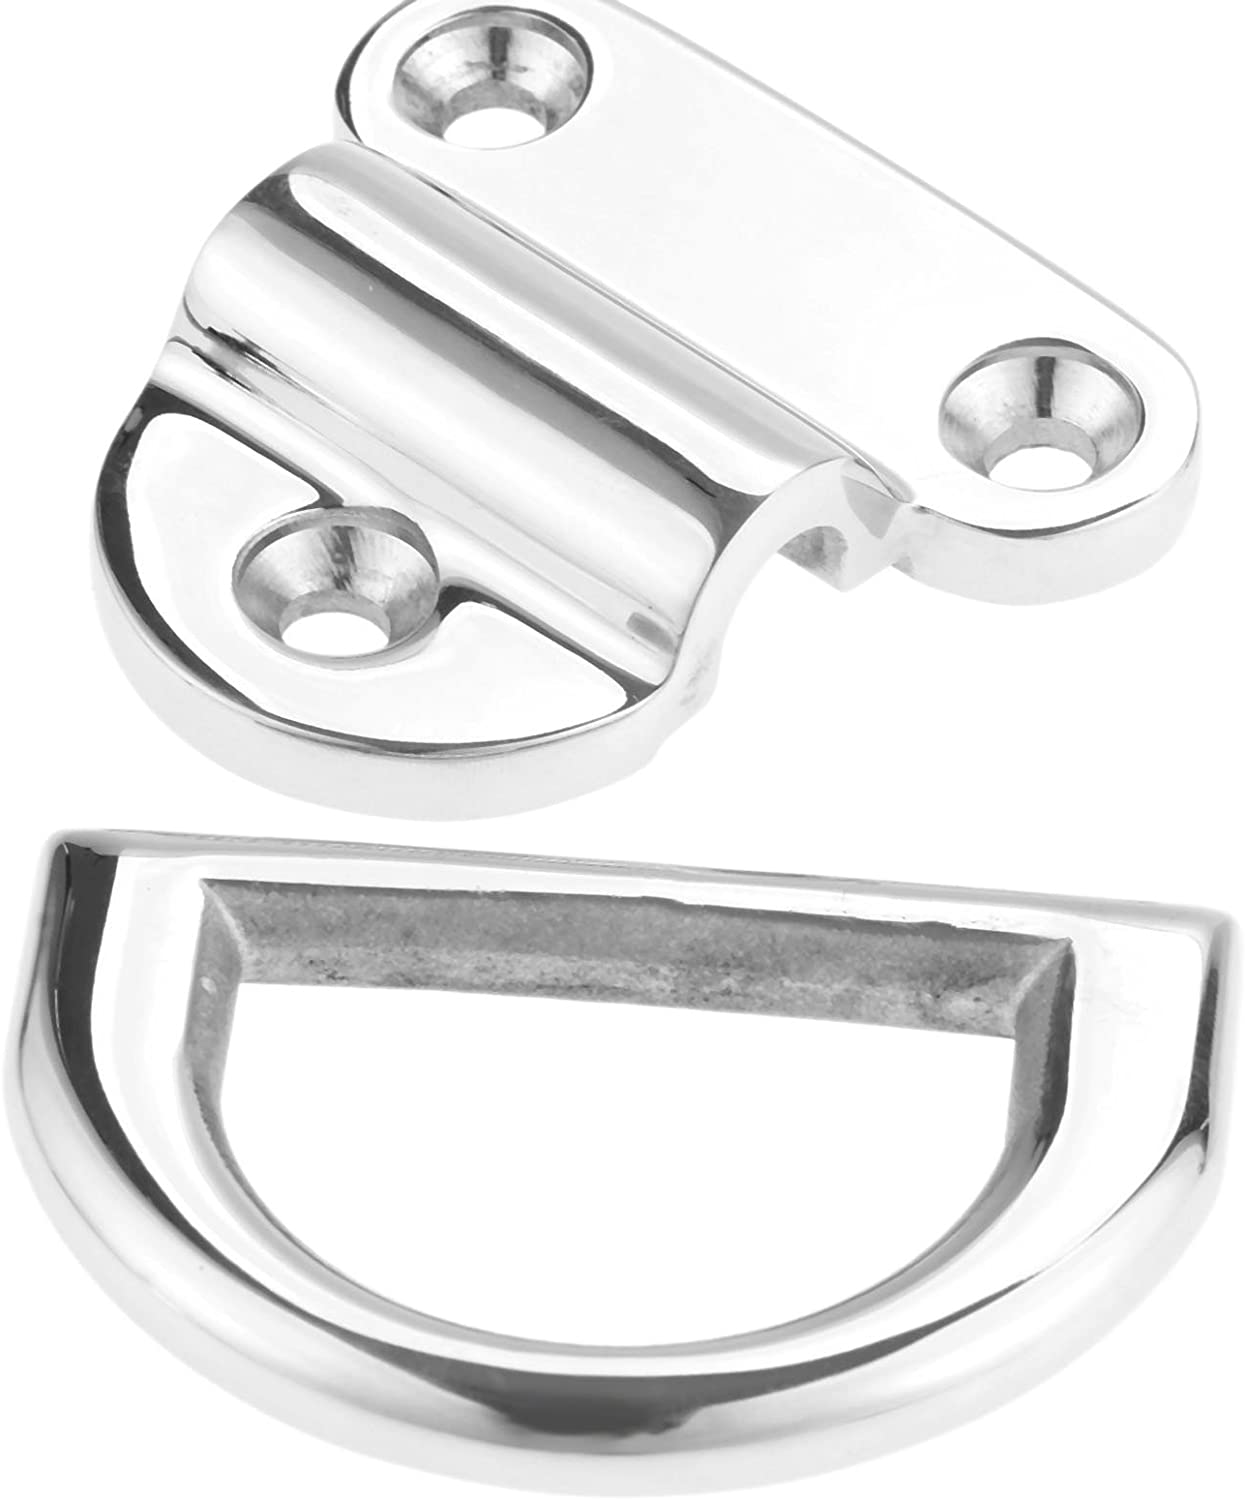 Stainless Steel 316 Folding Pad Eye D Ring Tie Down 2.83 x 2.71 x 2.44inch Marine Grade